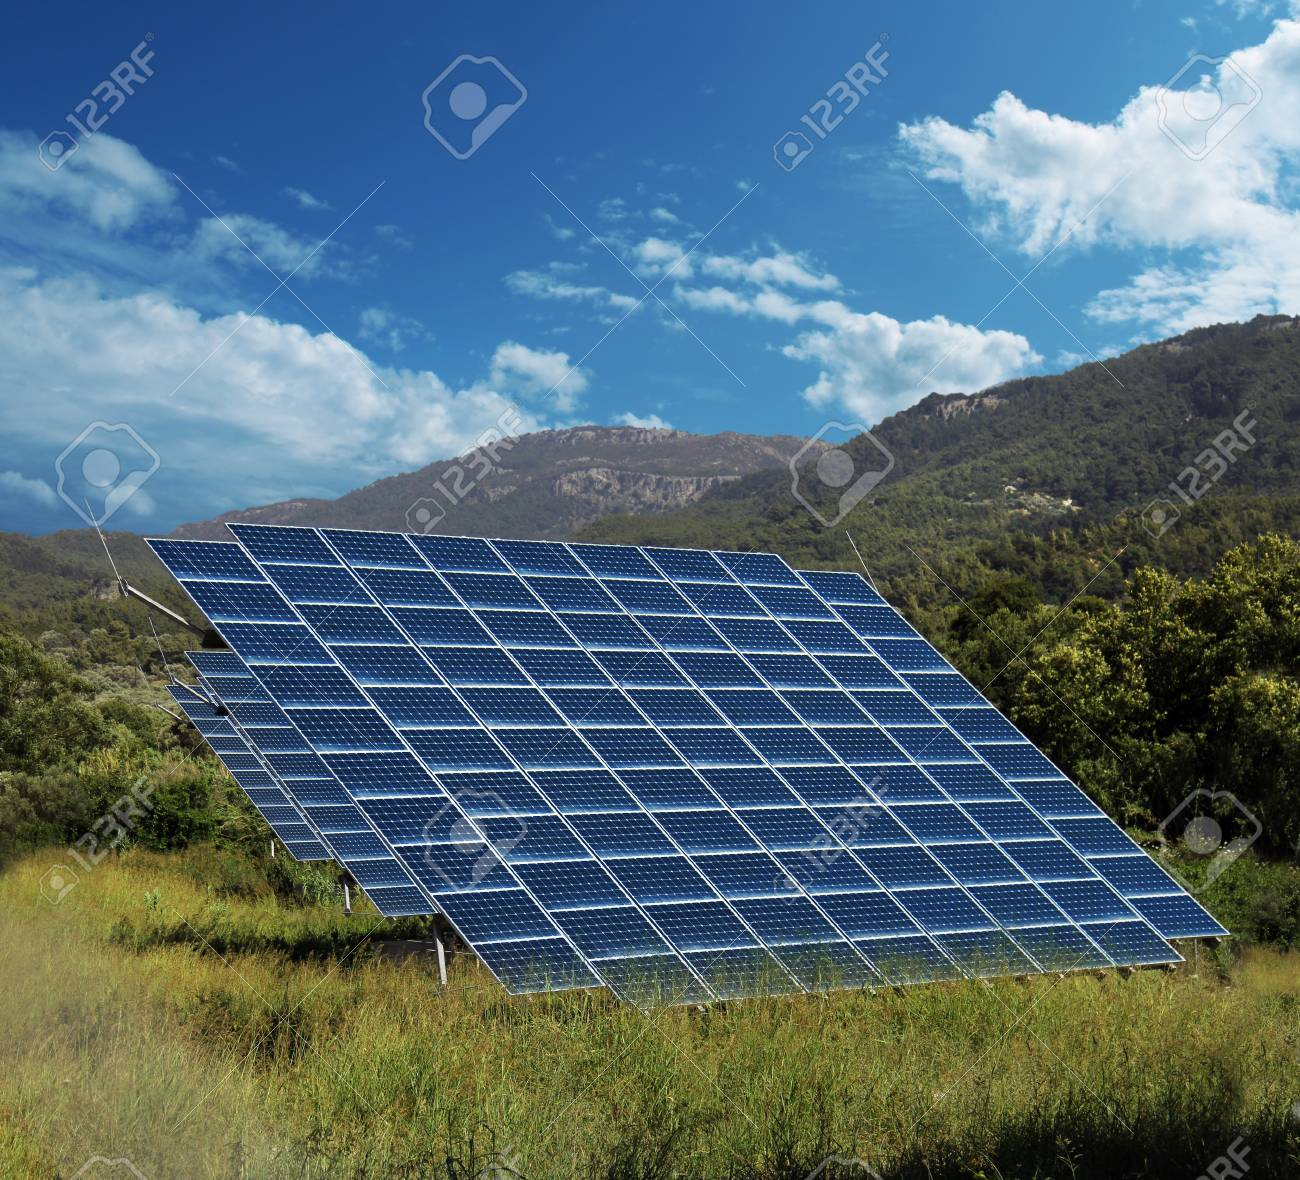 Solar energy panel collectors on sunny countryside landscape - 22224293